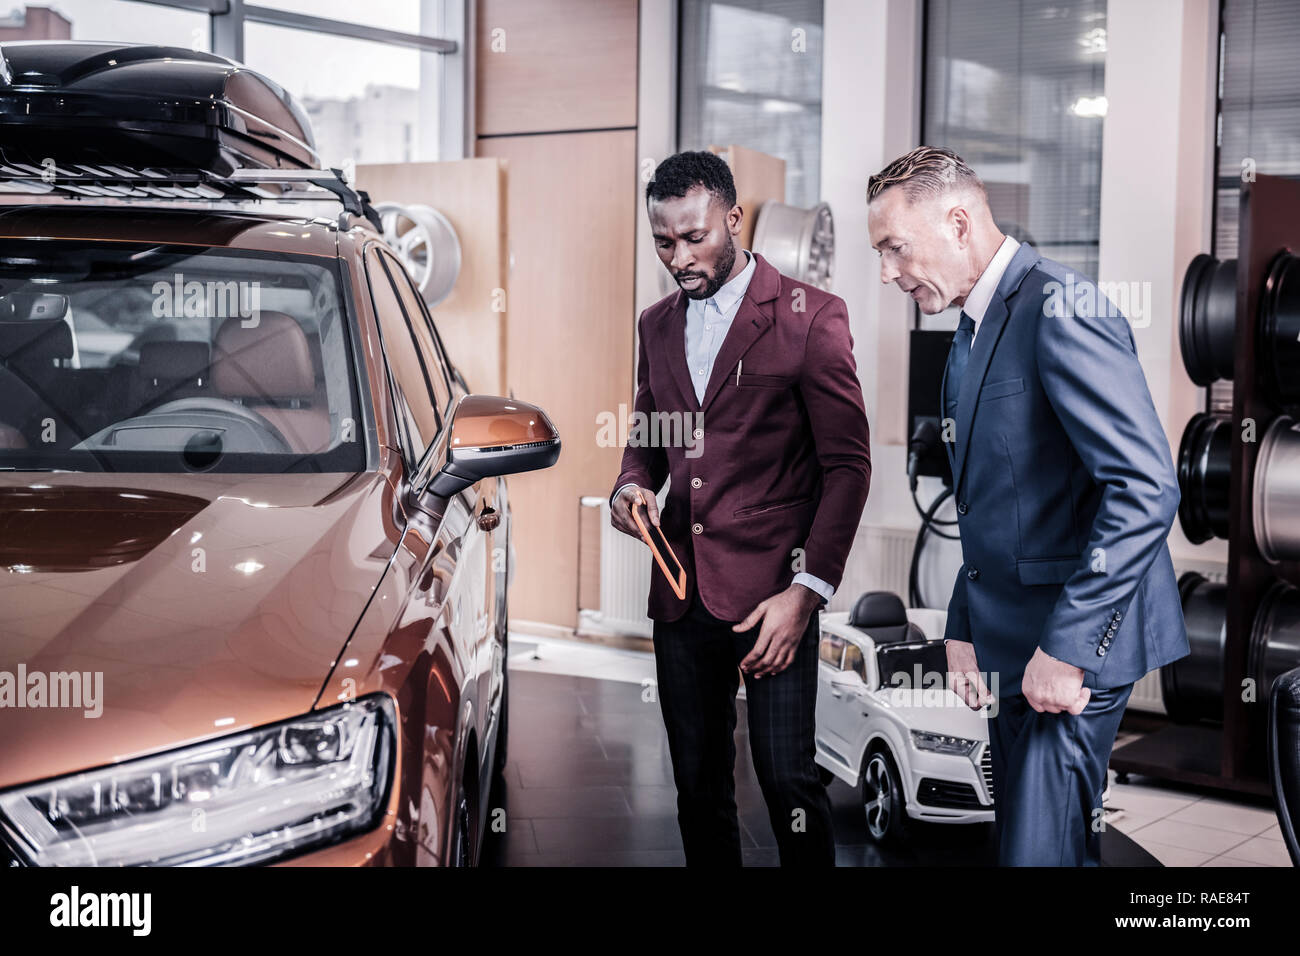 Businessmen standing in car showroom looking at hatchback car - Stock Image